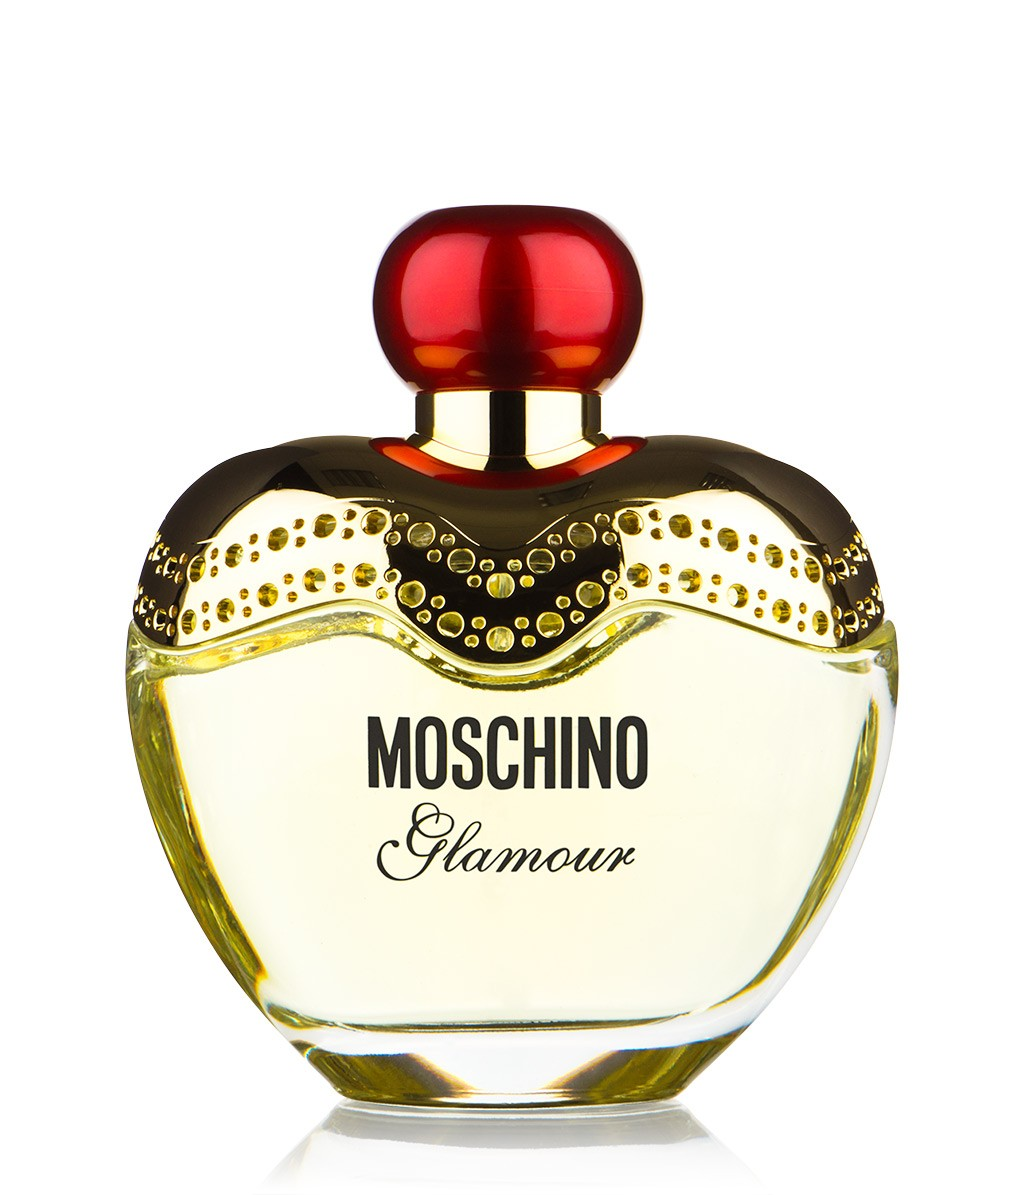 Nuoc Hoa nu Moschino Glamour mini chinh hang